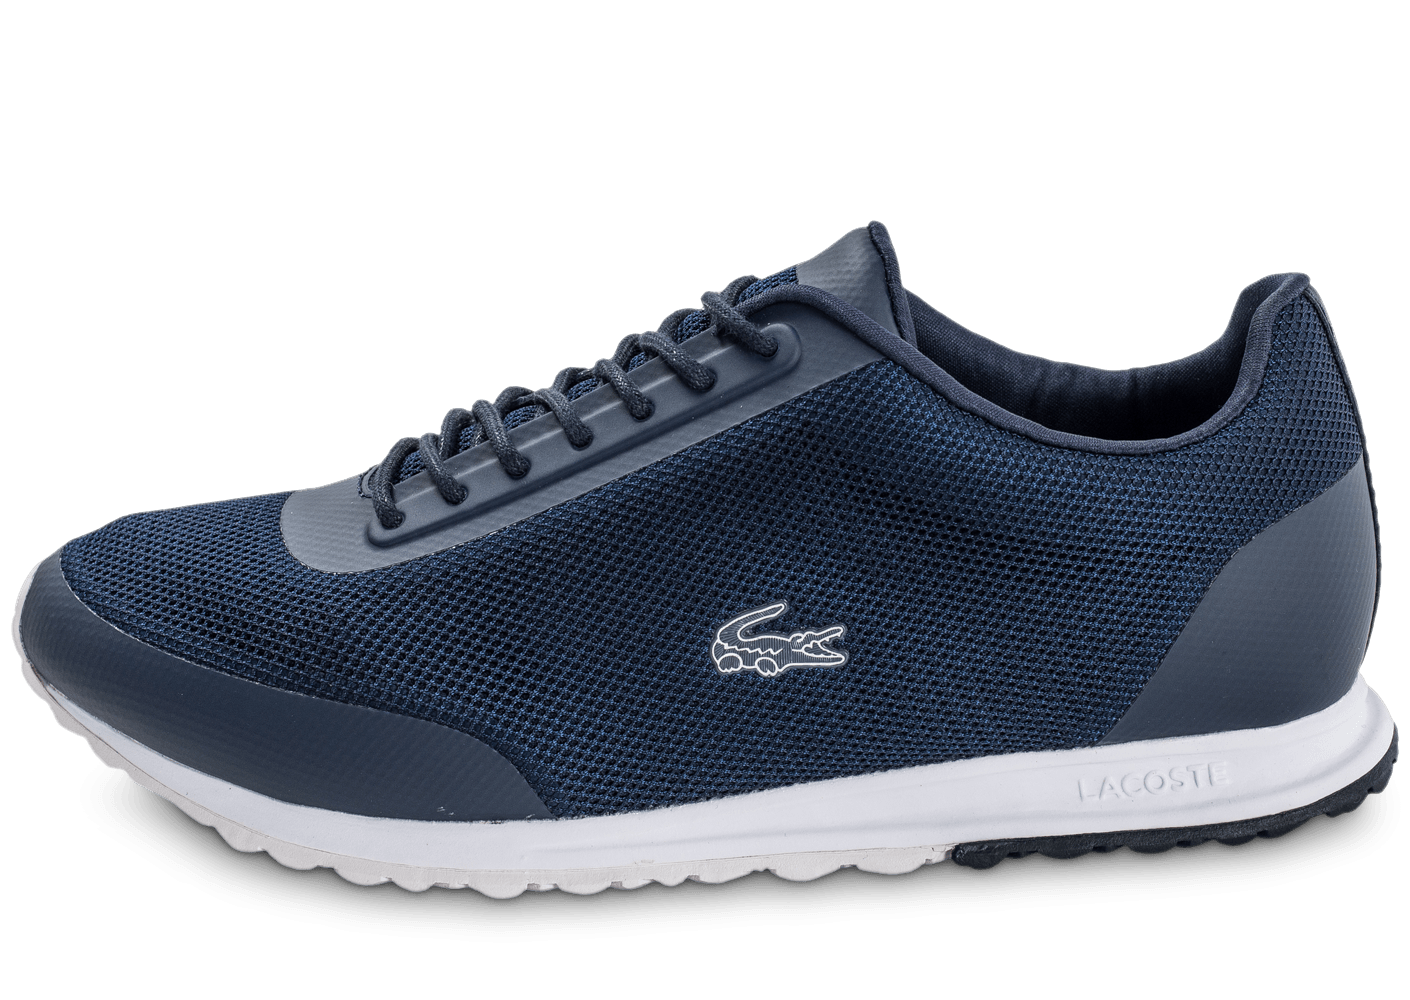 chaussure lacoste nouvelle collection achat chaussures lacoste en ligne chaussure lacoste homme. Black Bedroom Furniture Sets. Home Design Ideas